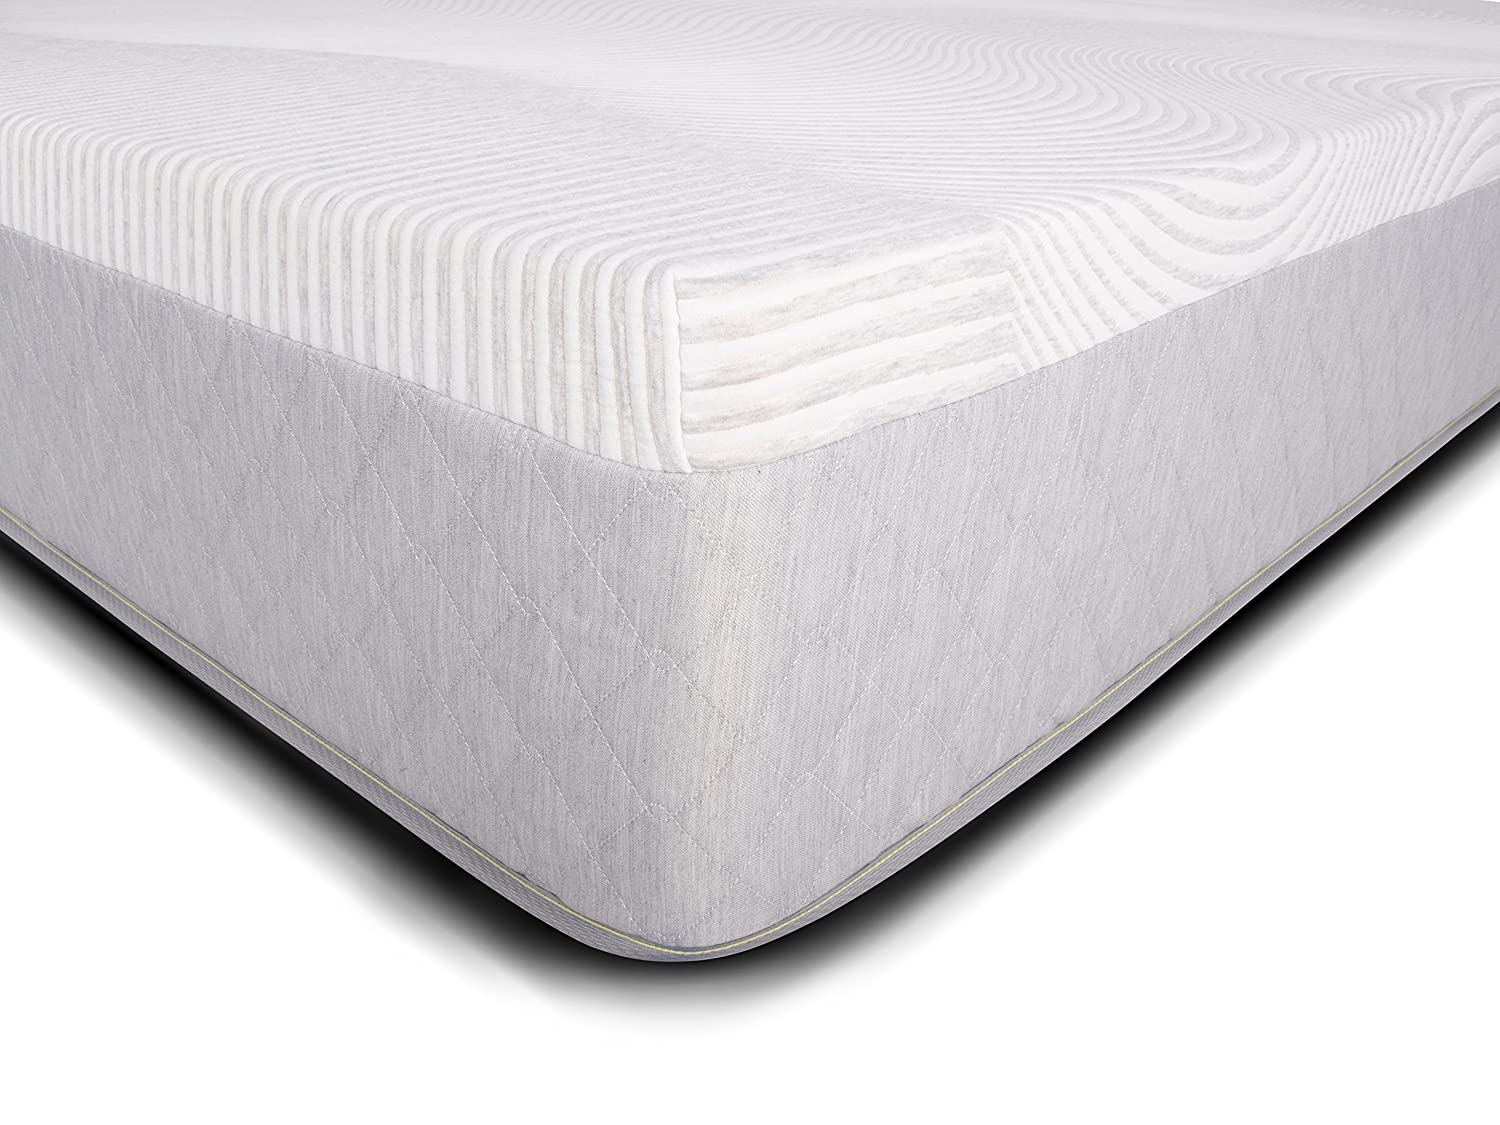 Dreamfoam iPedic Sojourn 12 Medium Comfort Gel Memory Foam Mattress, Queen-Made in The USA